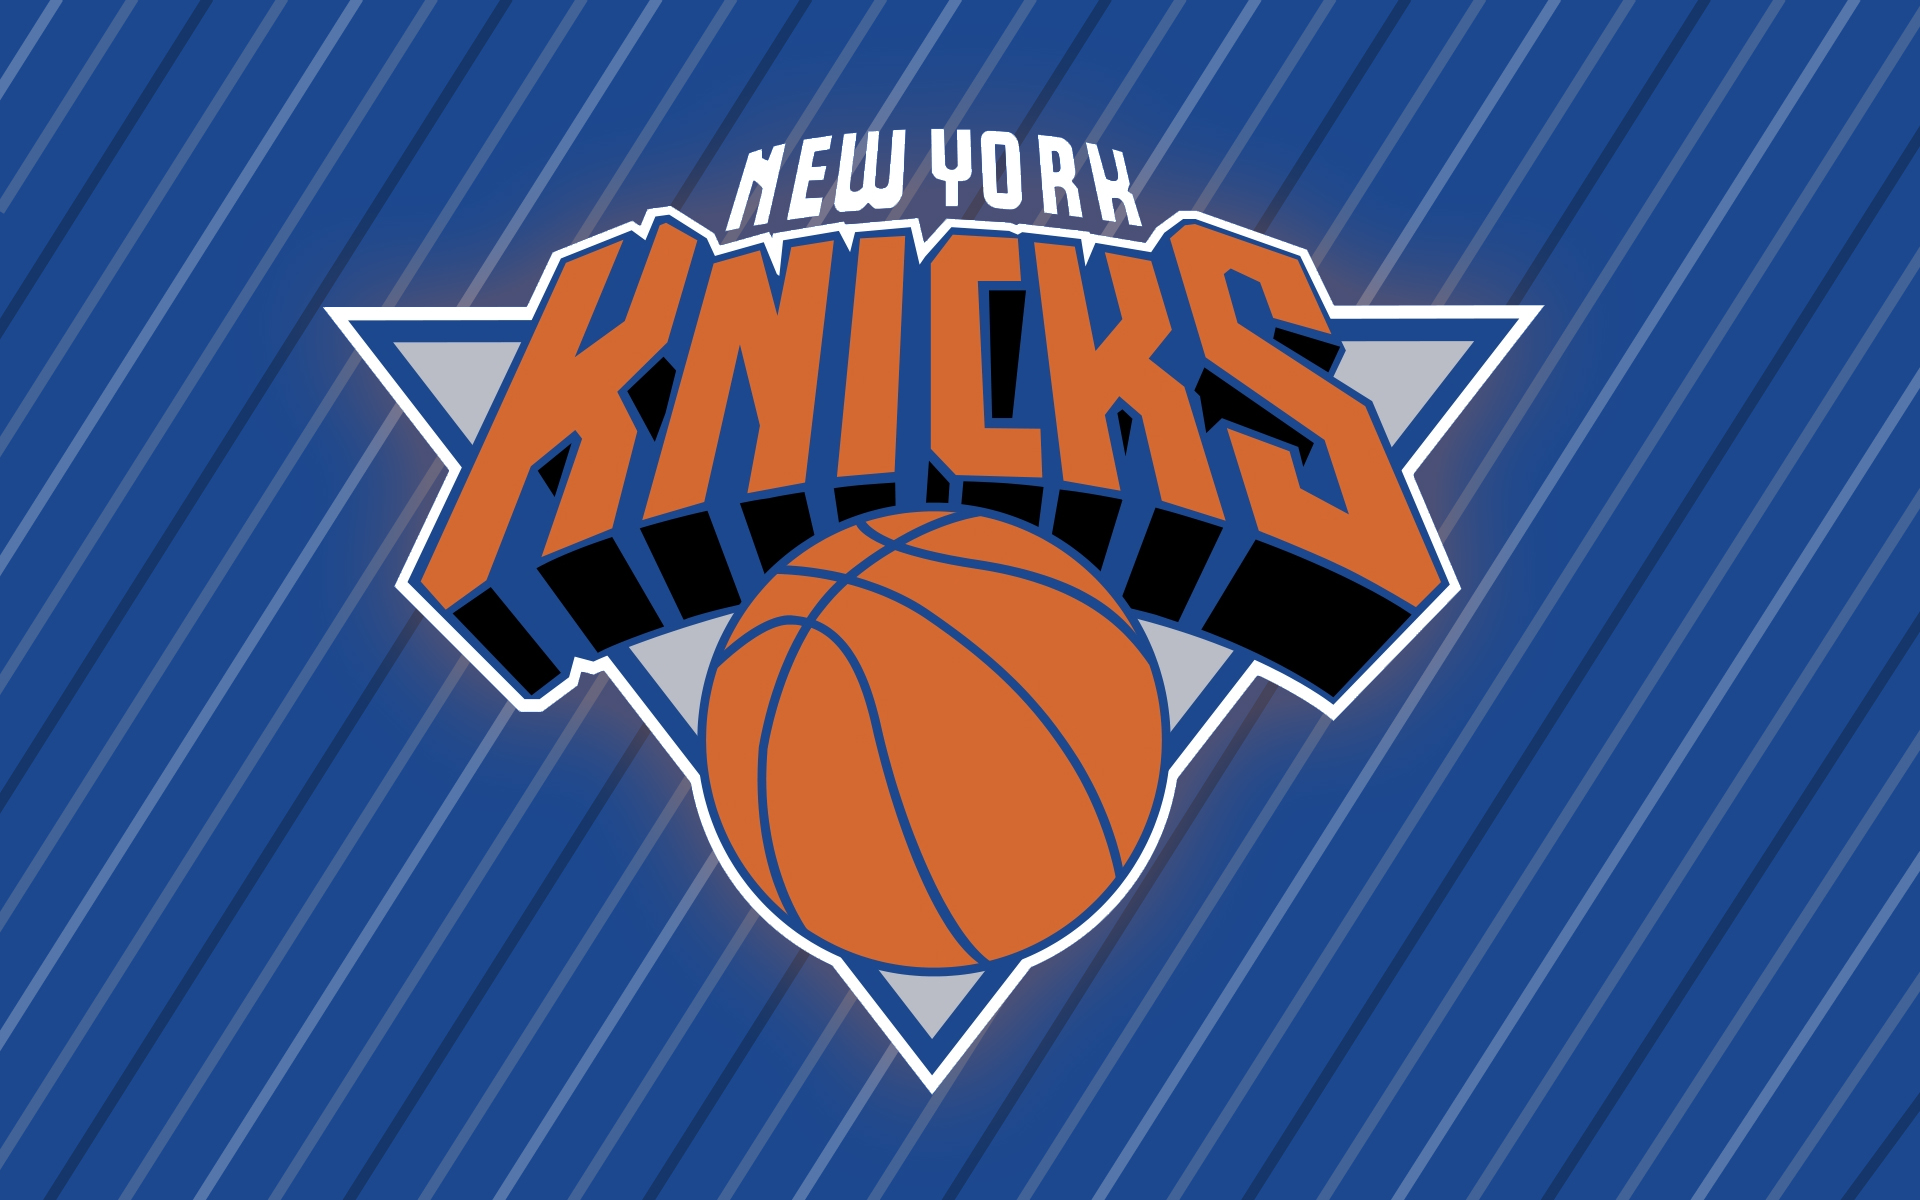 1920x1200 - New York Knicks Wallpapers 18